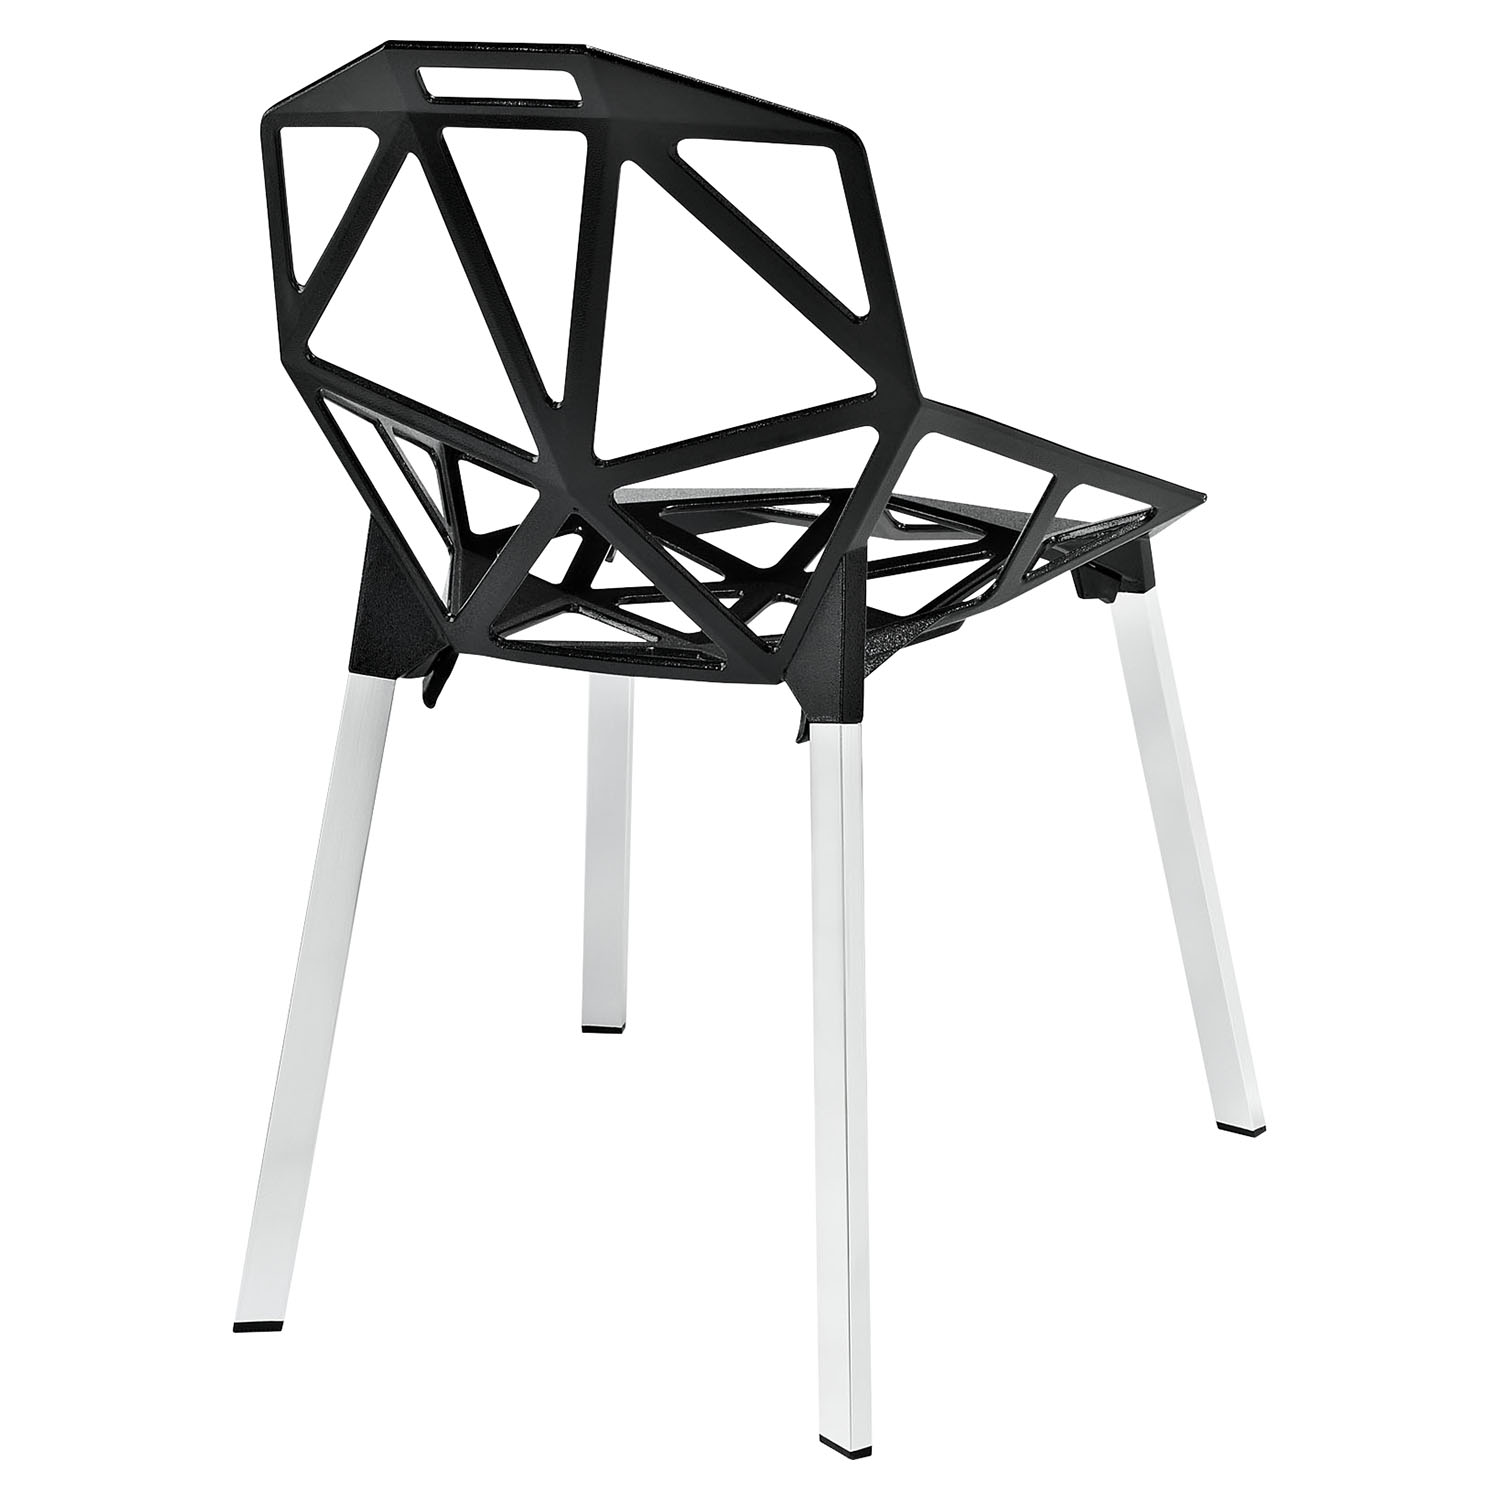 Connections Aluminum Dining Chair - Black (Set of 2) - EEI-1358-BLK